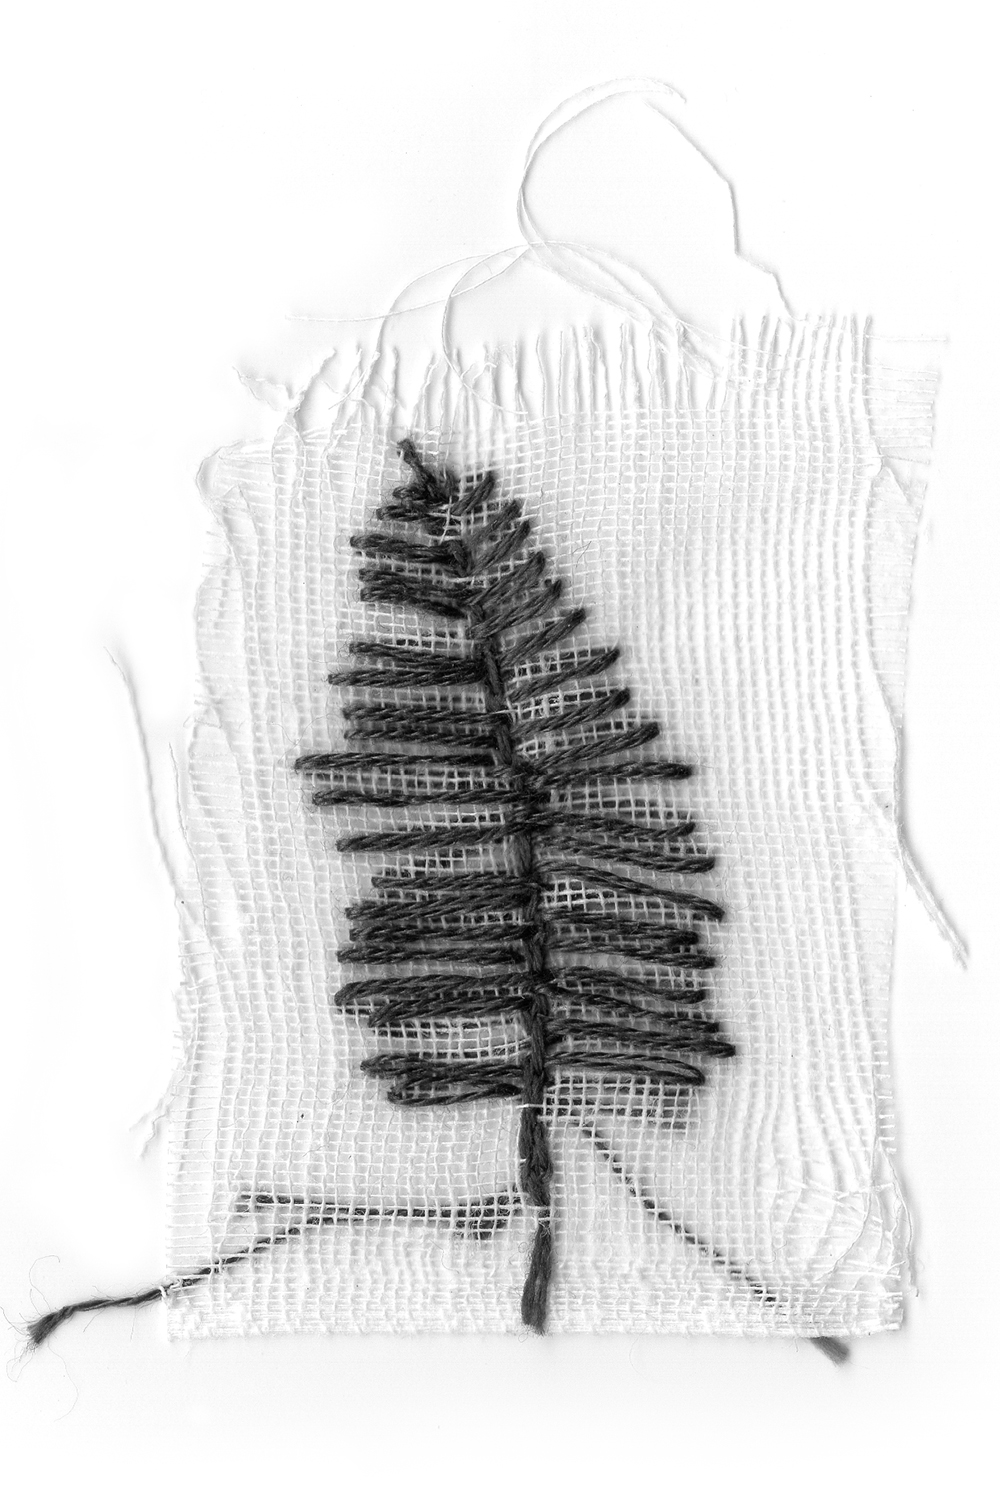 Needlework by artist Anne Greenwood for project printed in collaboration with Tiger Food Press